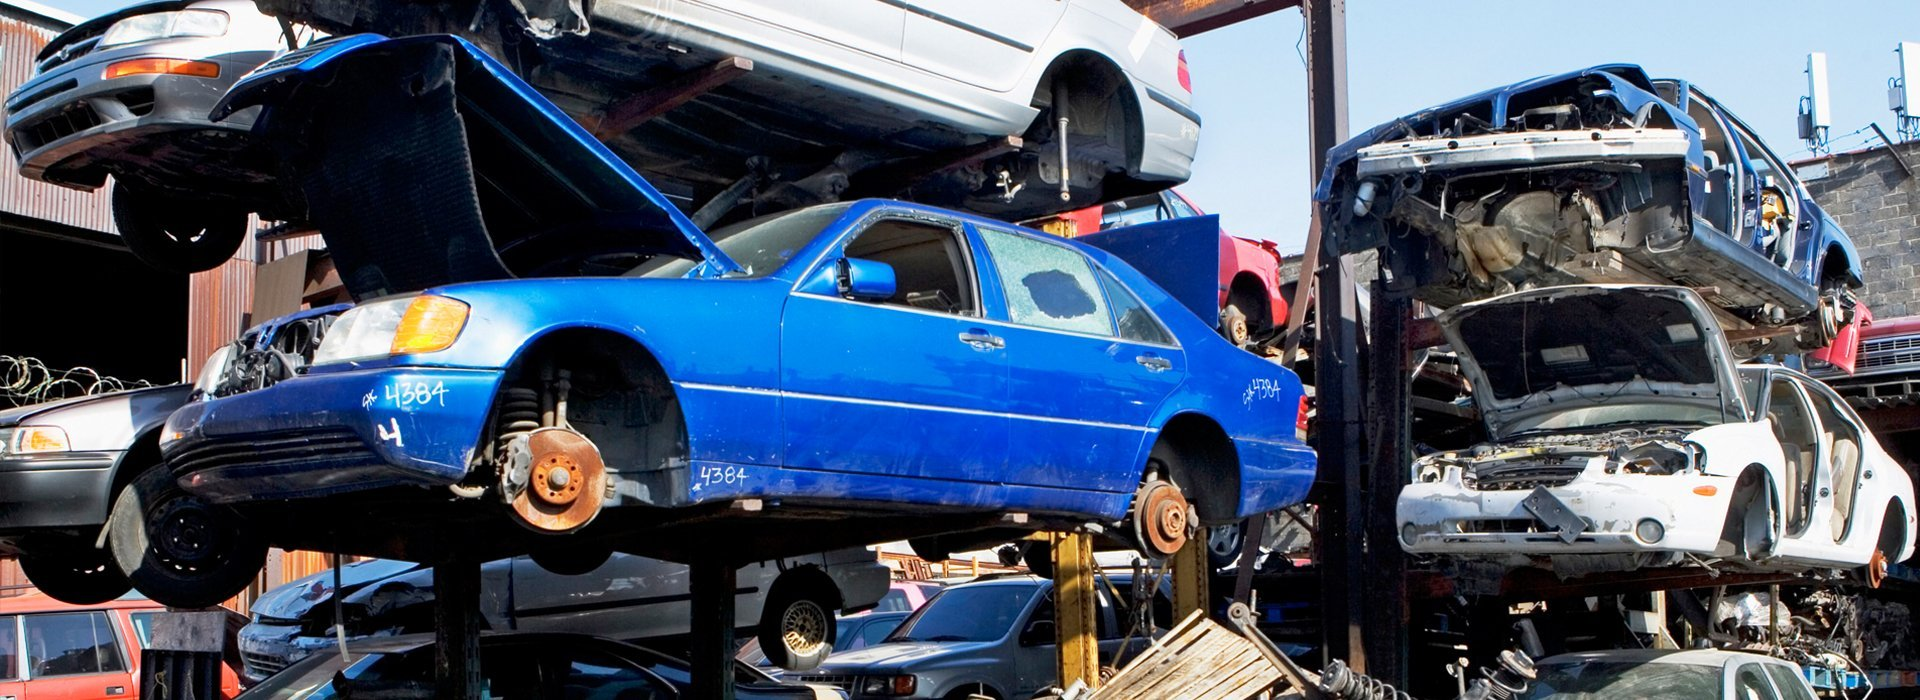 Wallys Auto Salvage >> Wally's Auto | Auto Wrecking | Beaver Dam, WI